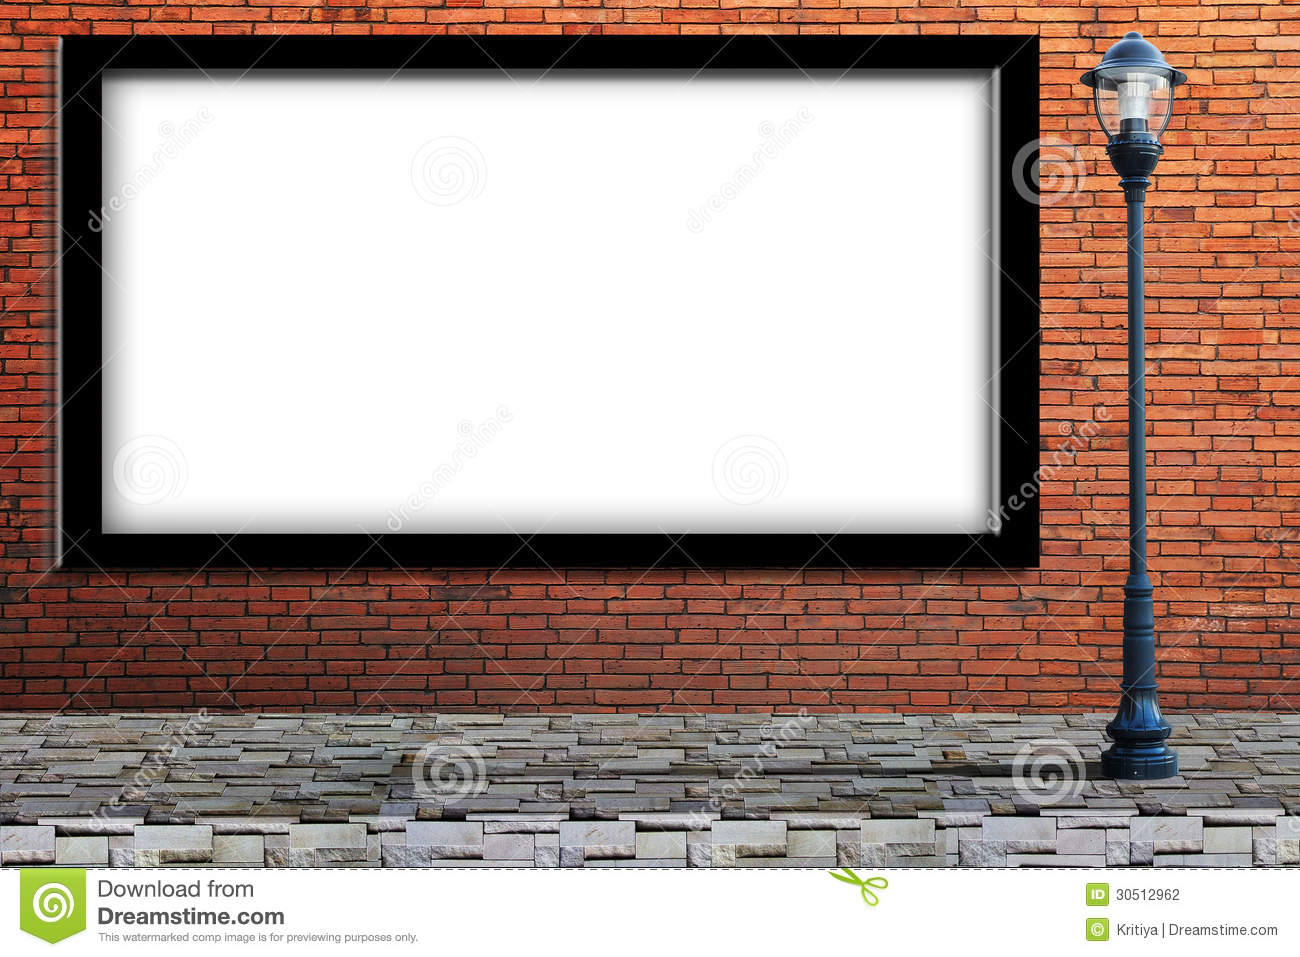 Royalty Free Stock Photos Blank Advertising Billboard Image5168398 further Royalty Free Stock Image End Wood Sign Illustration Design Over White Background Image33301046 moreover Duboard as well Cherry Hills Farmhouse also Clip 2267714 Stock Footage Billboard In The City Street Blank Screen Hd Time Lapse. on outdoor message board plans